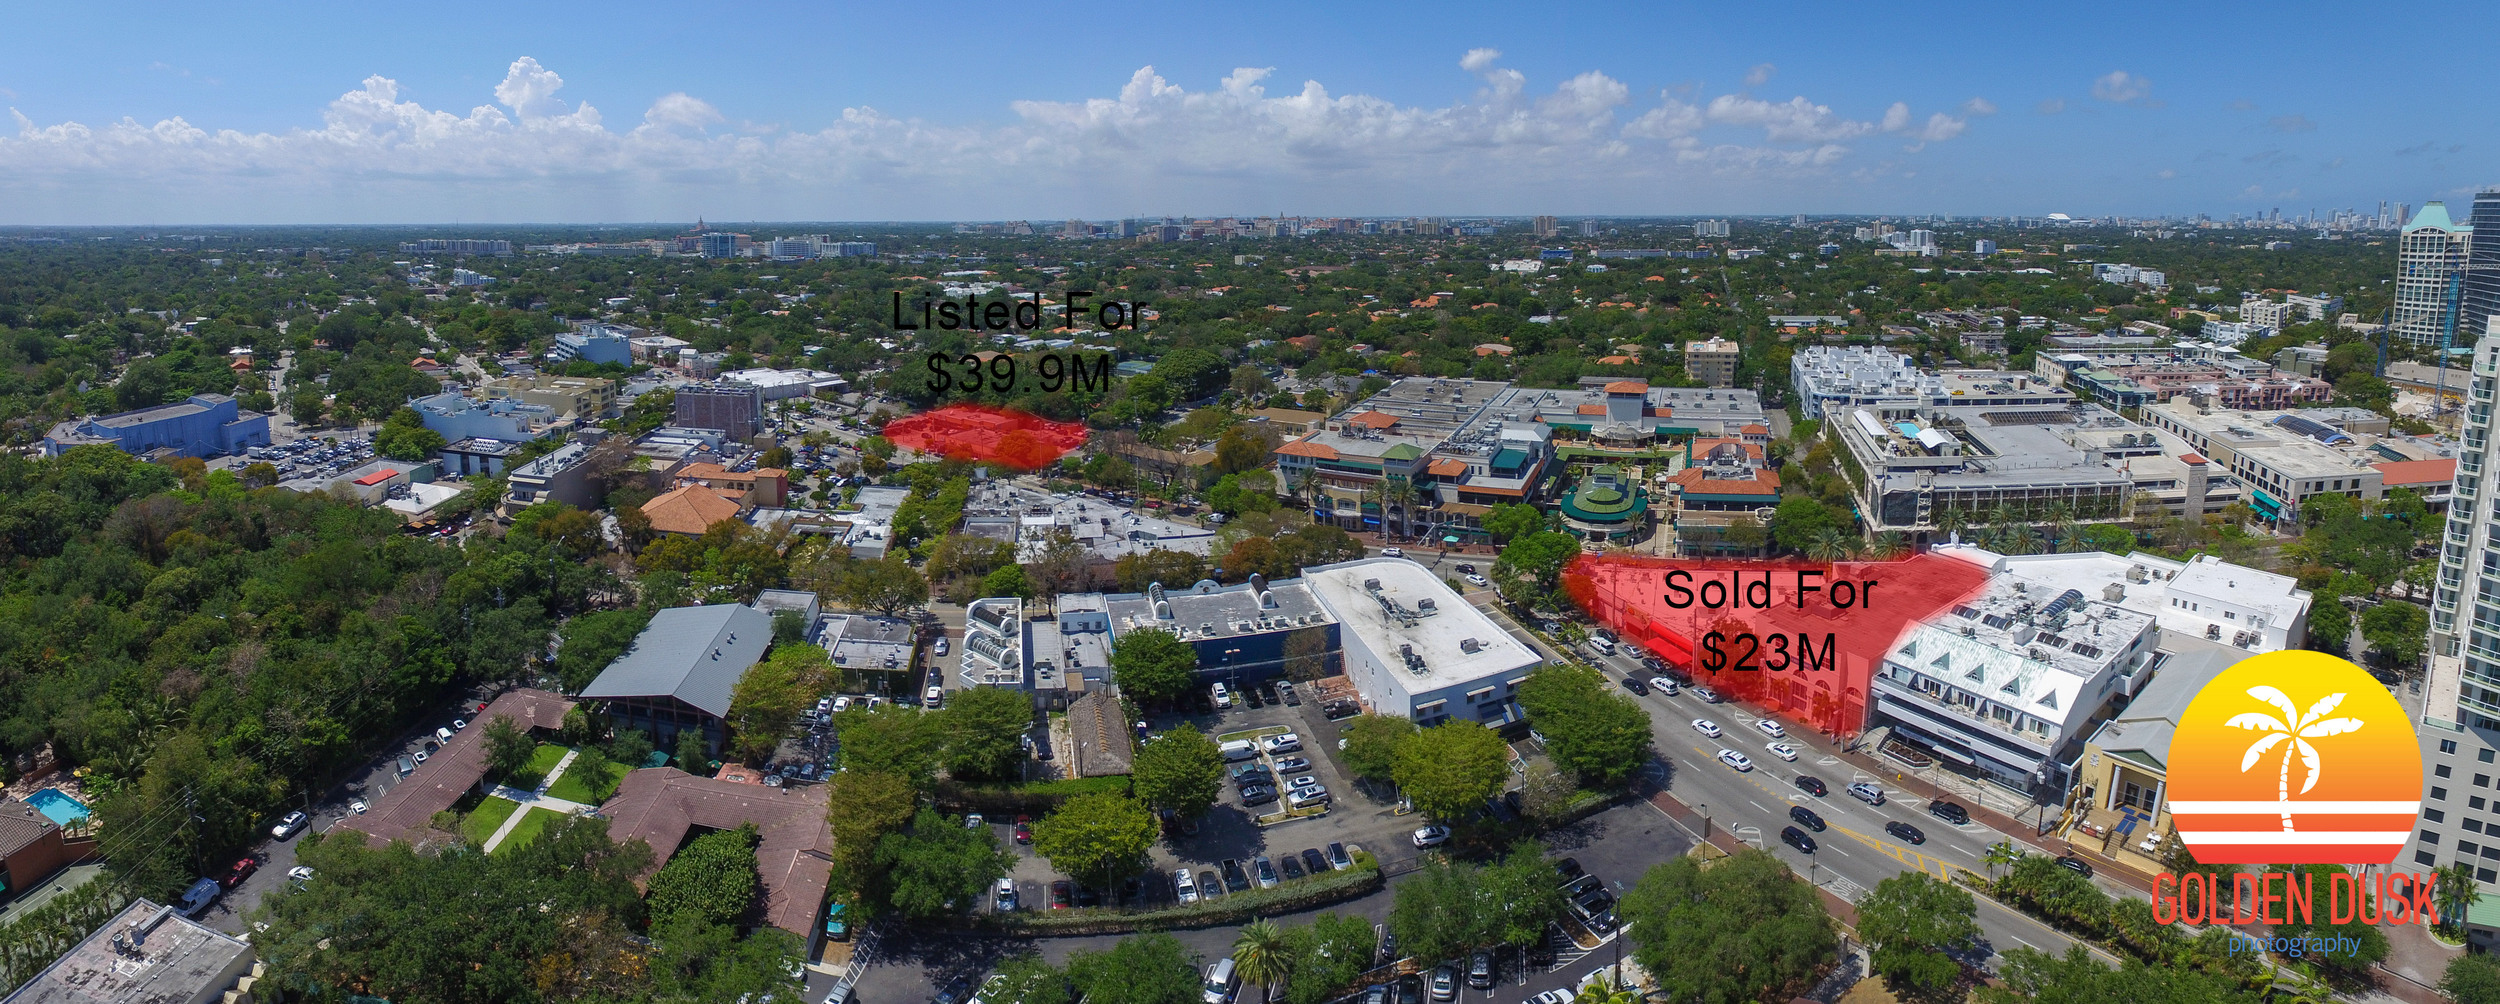 Overview of Coconut Grove